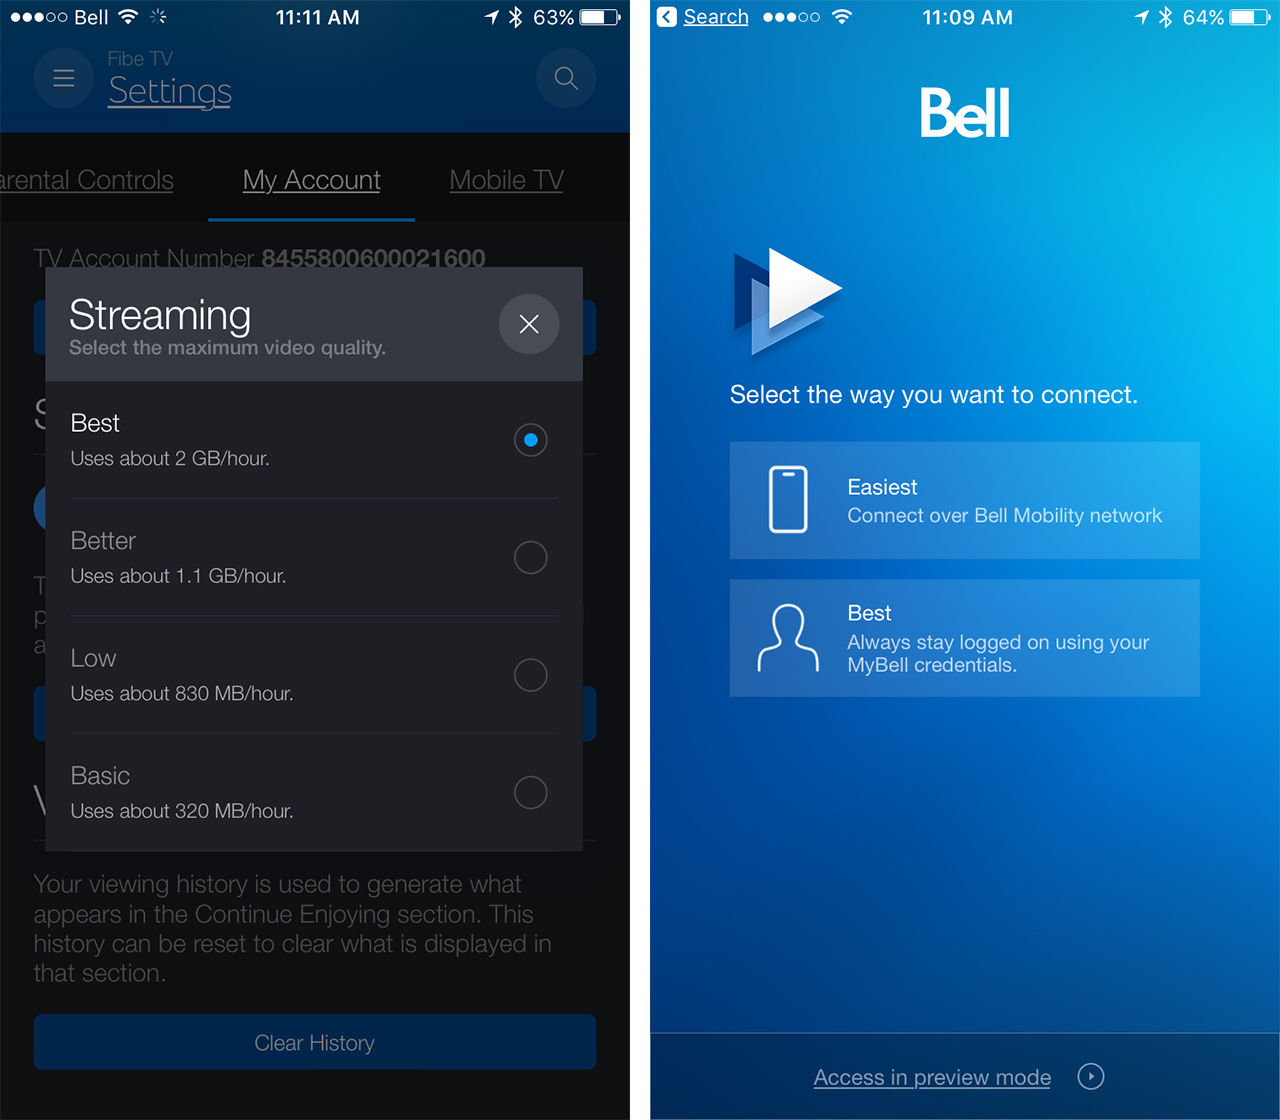 Here's everything you need to know about Bell's ALT TV